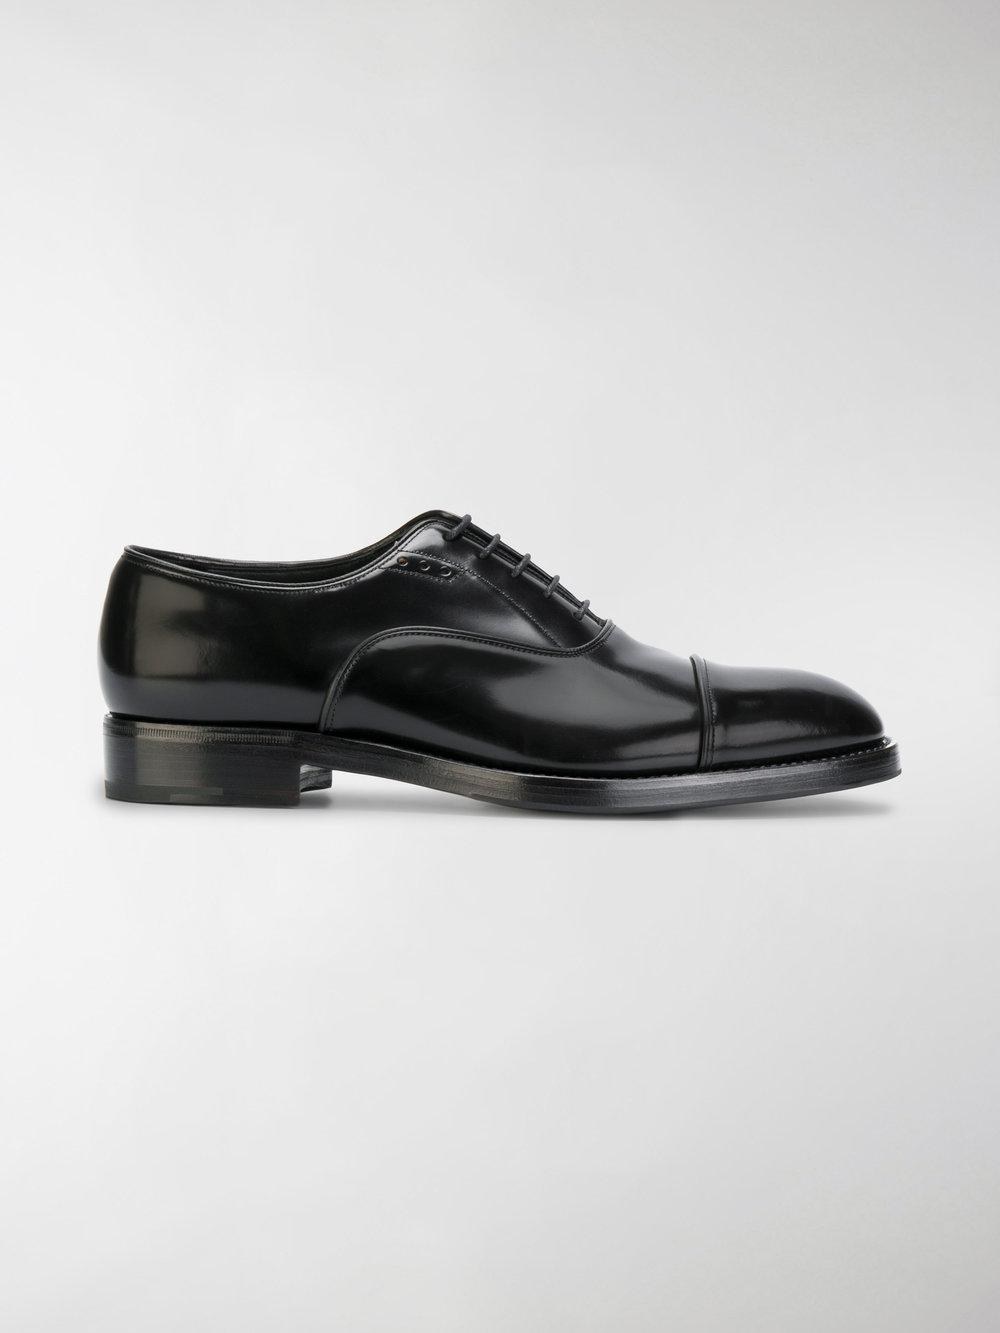 Prada Men's 2Eg261p39f0002 Black... free shipping best store to get free shipping footaction wiki for sale clearance sale online 5QvL2jySX